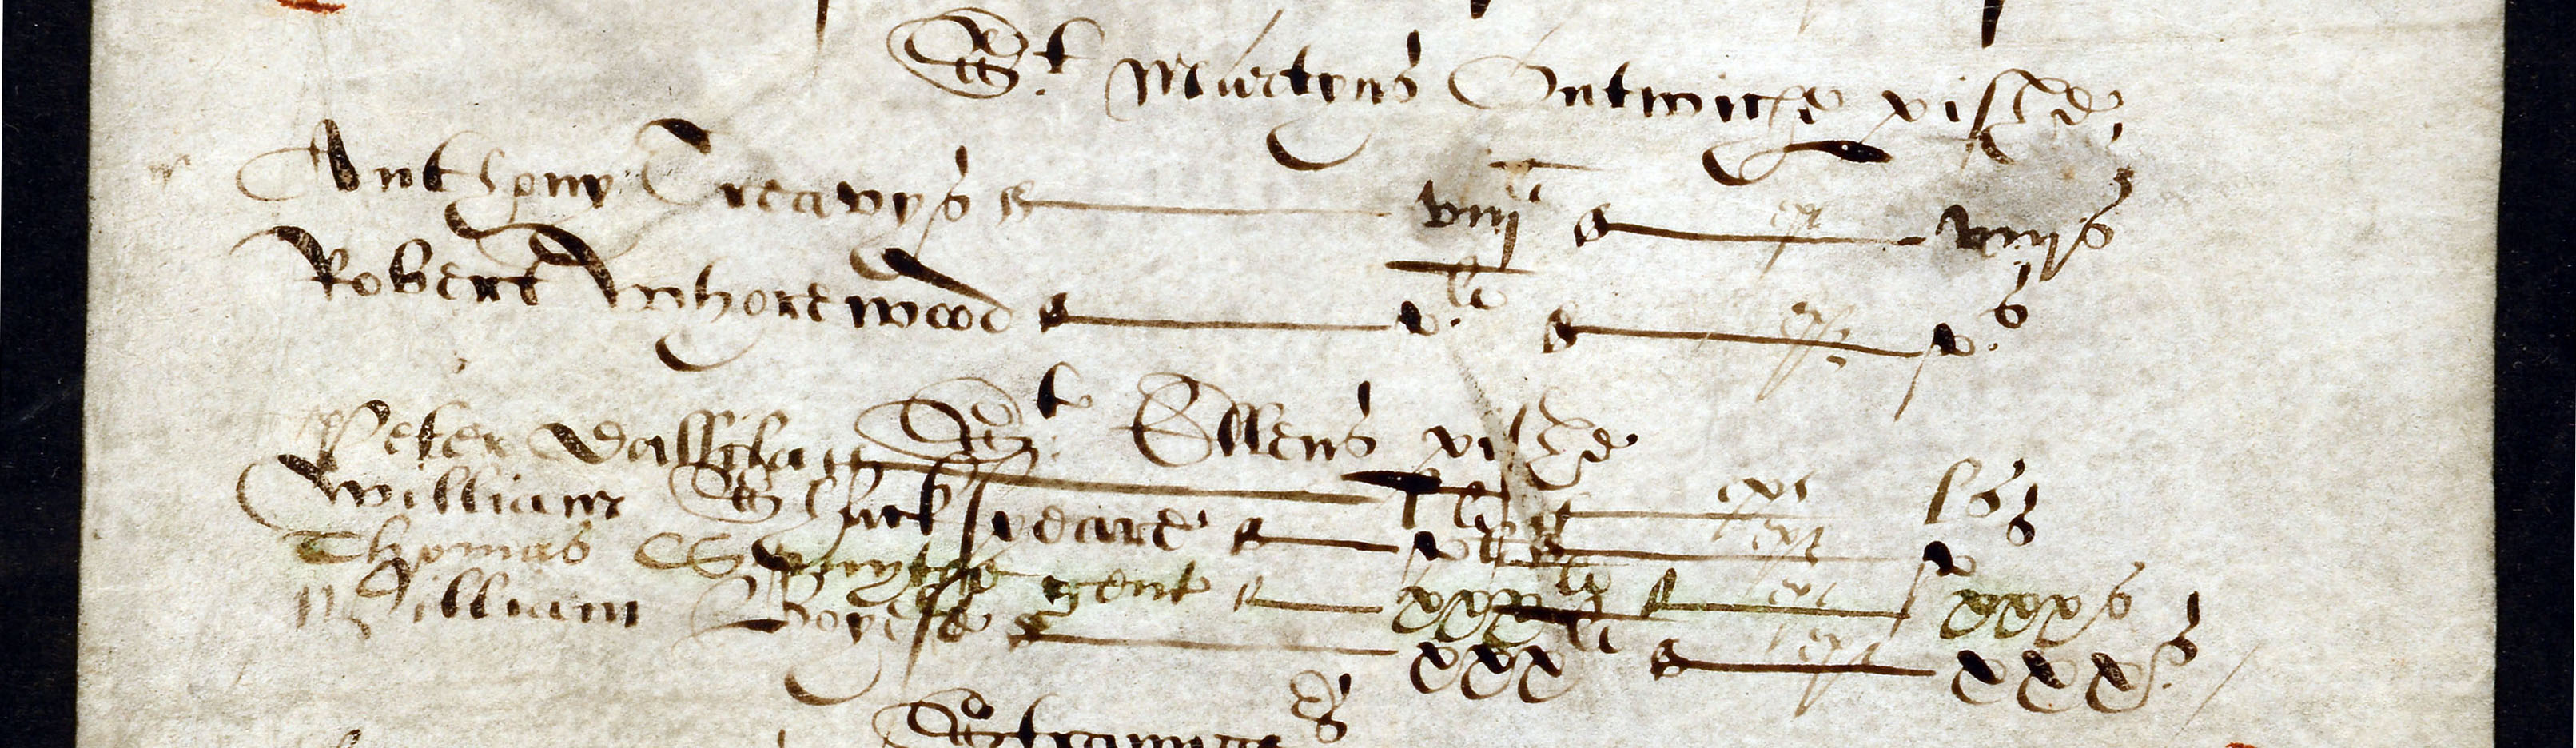 Shakespeare the tax evader: extract from a certificate by London tax commissioners, 1597 (E 179/146 f.354)